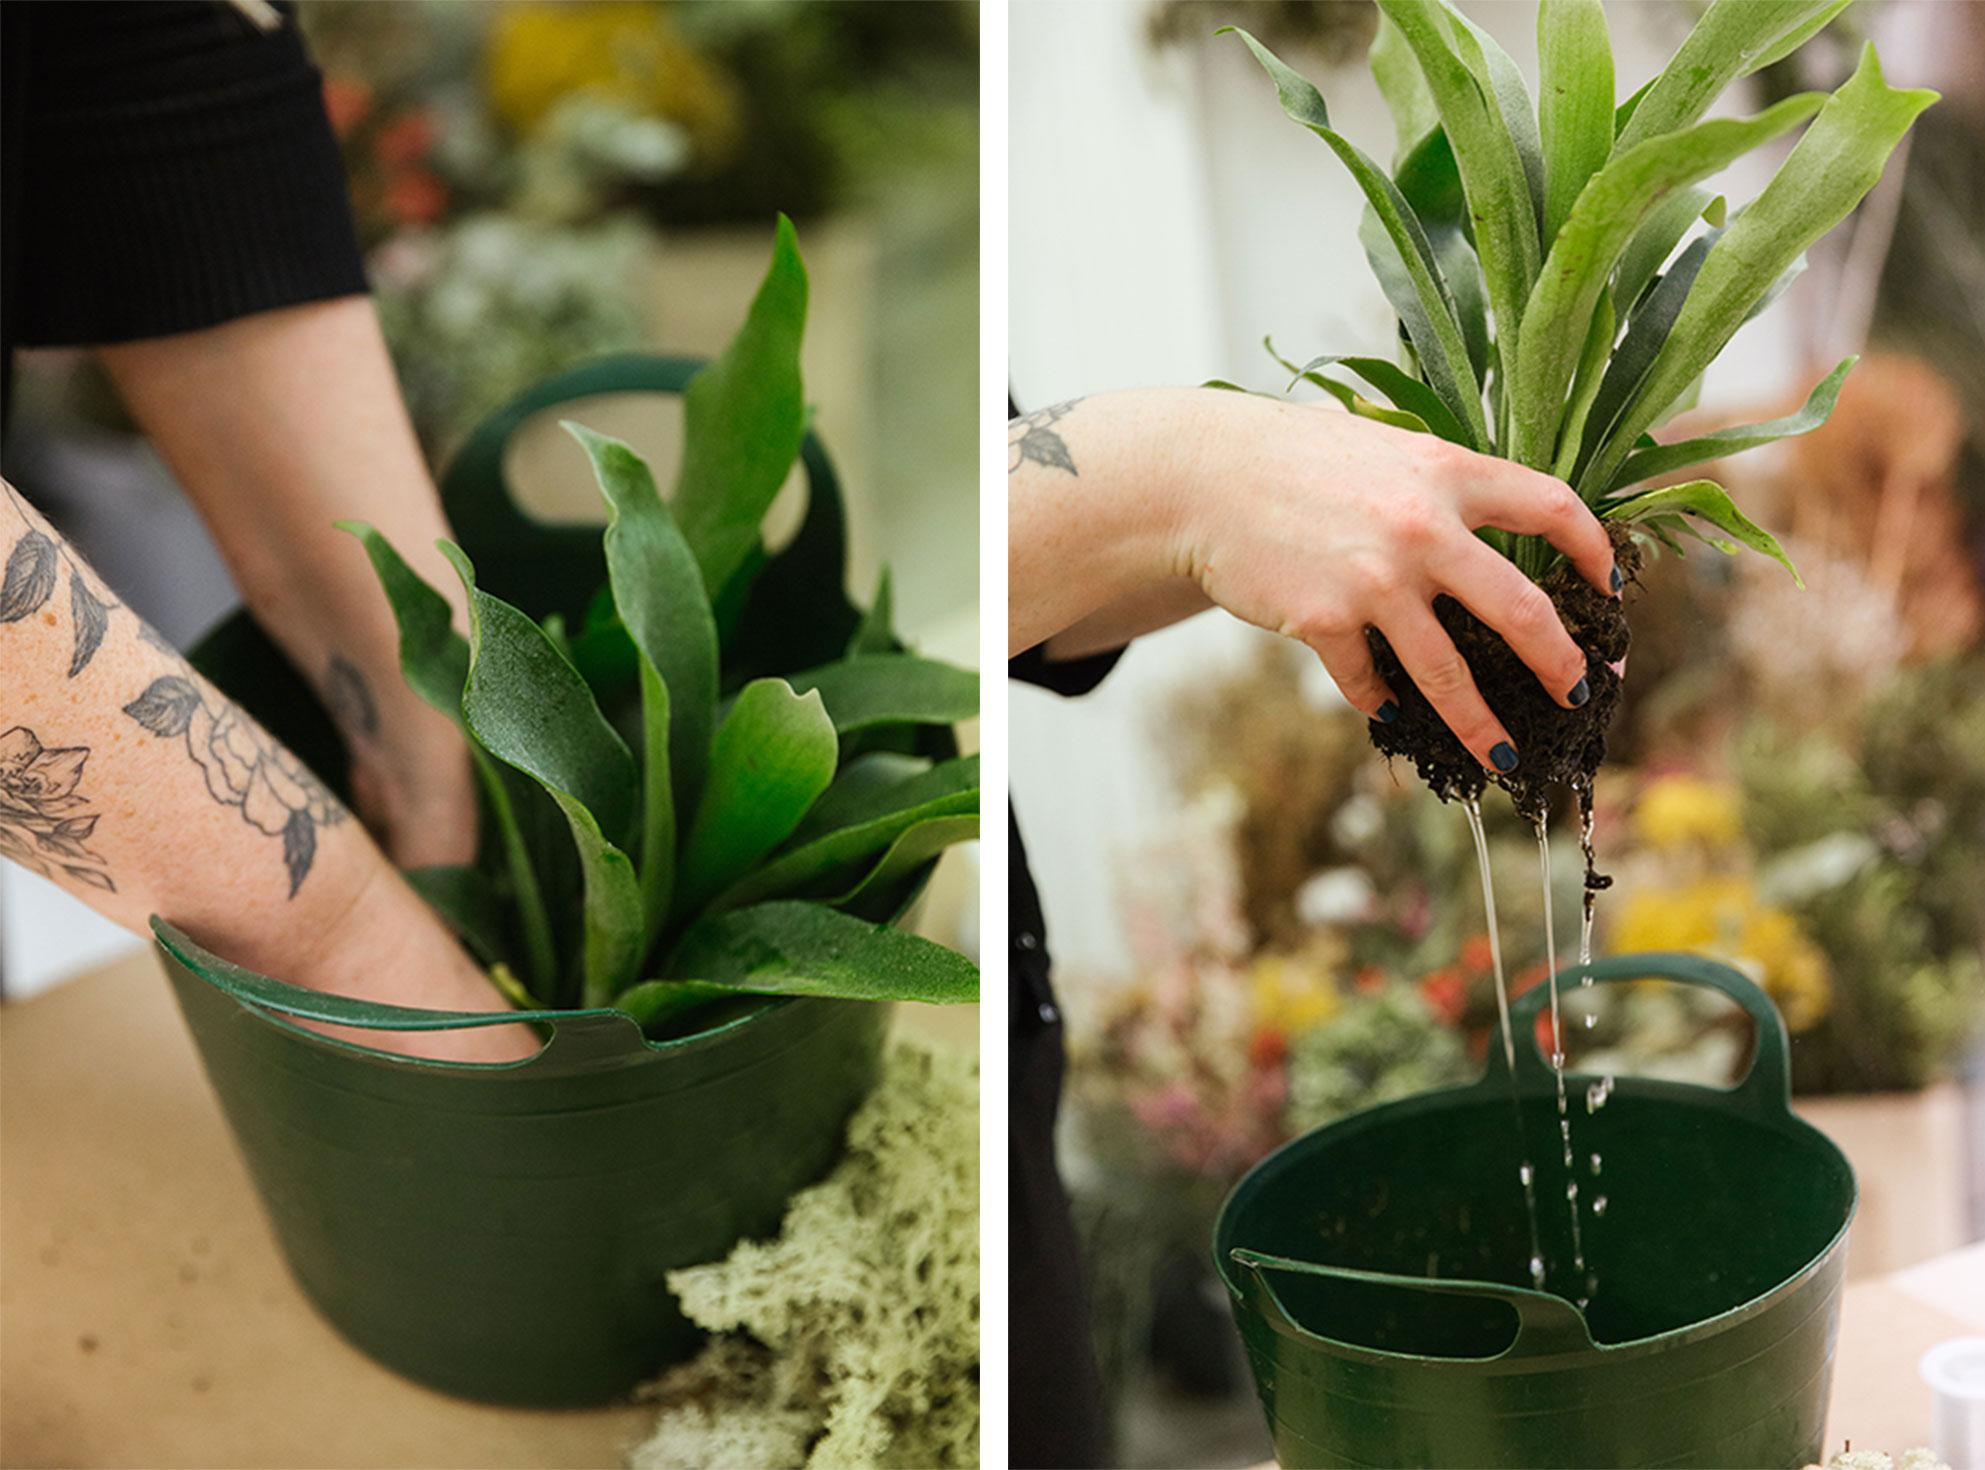 Dunk the staghorn fern in water to keep it fresh